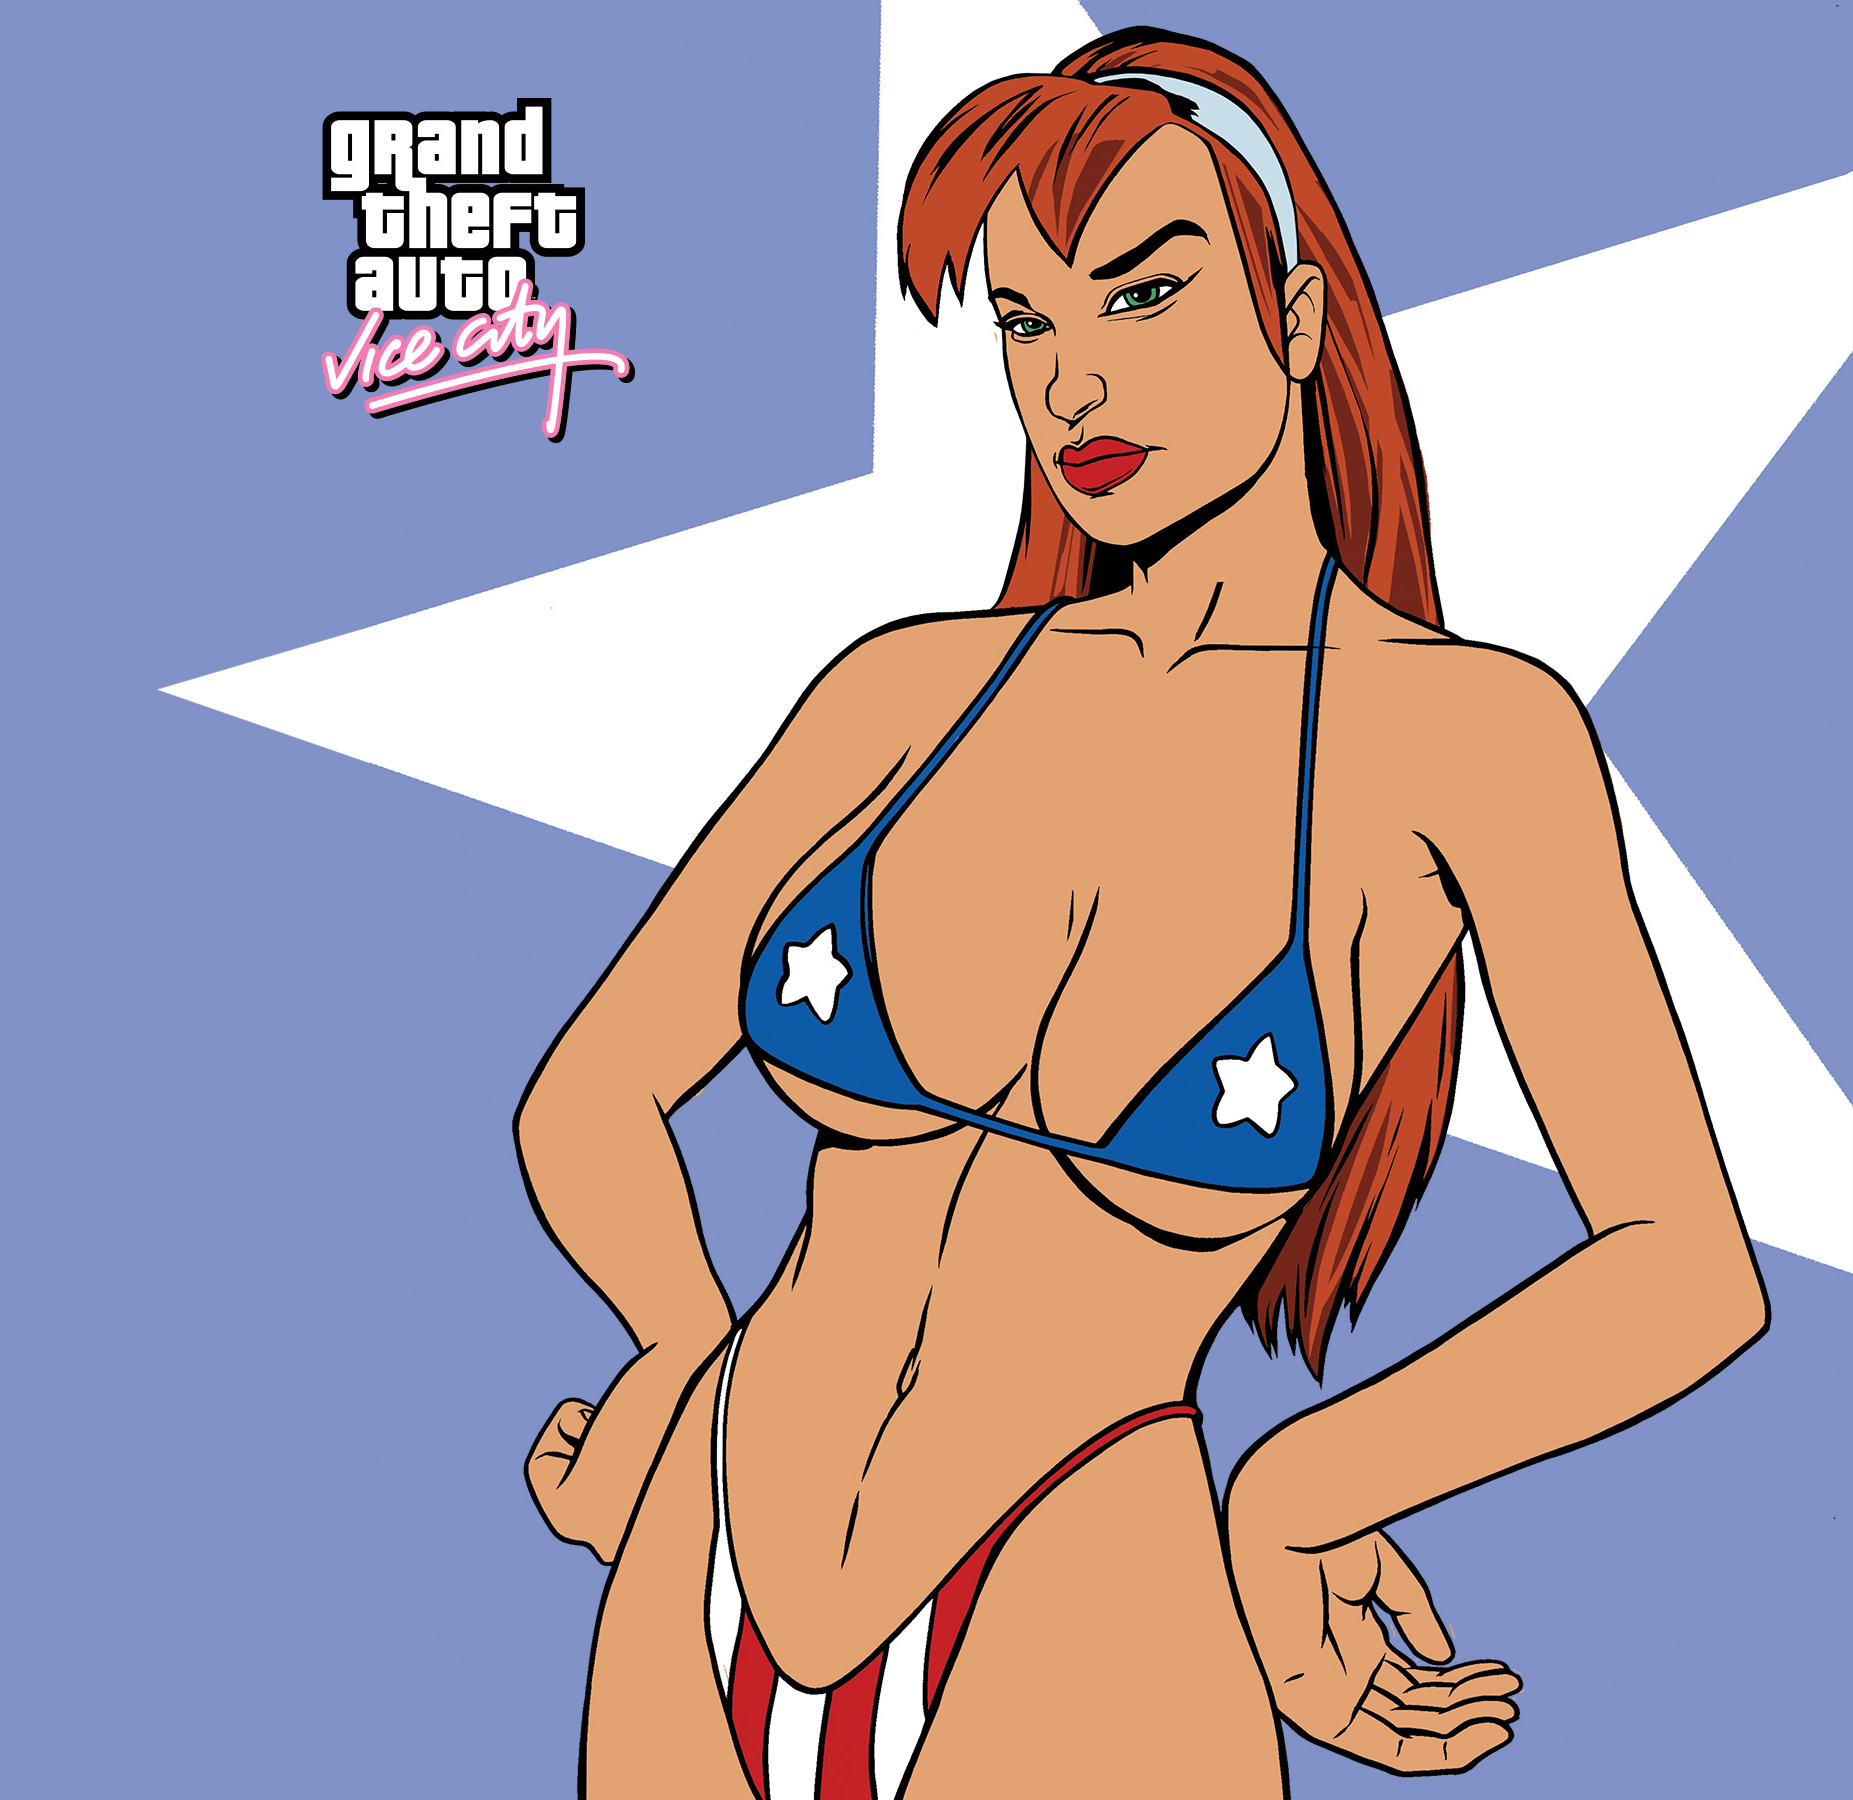 Pic gta vice city toon sex pic  nude tube